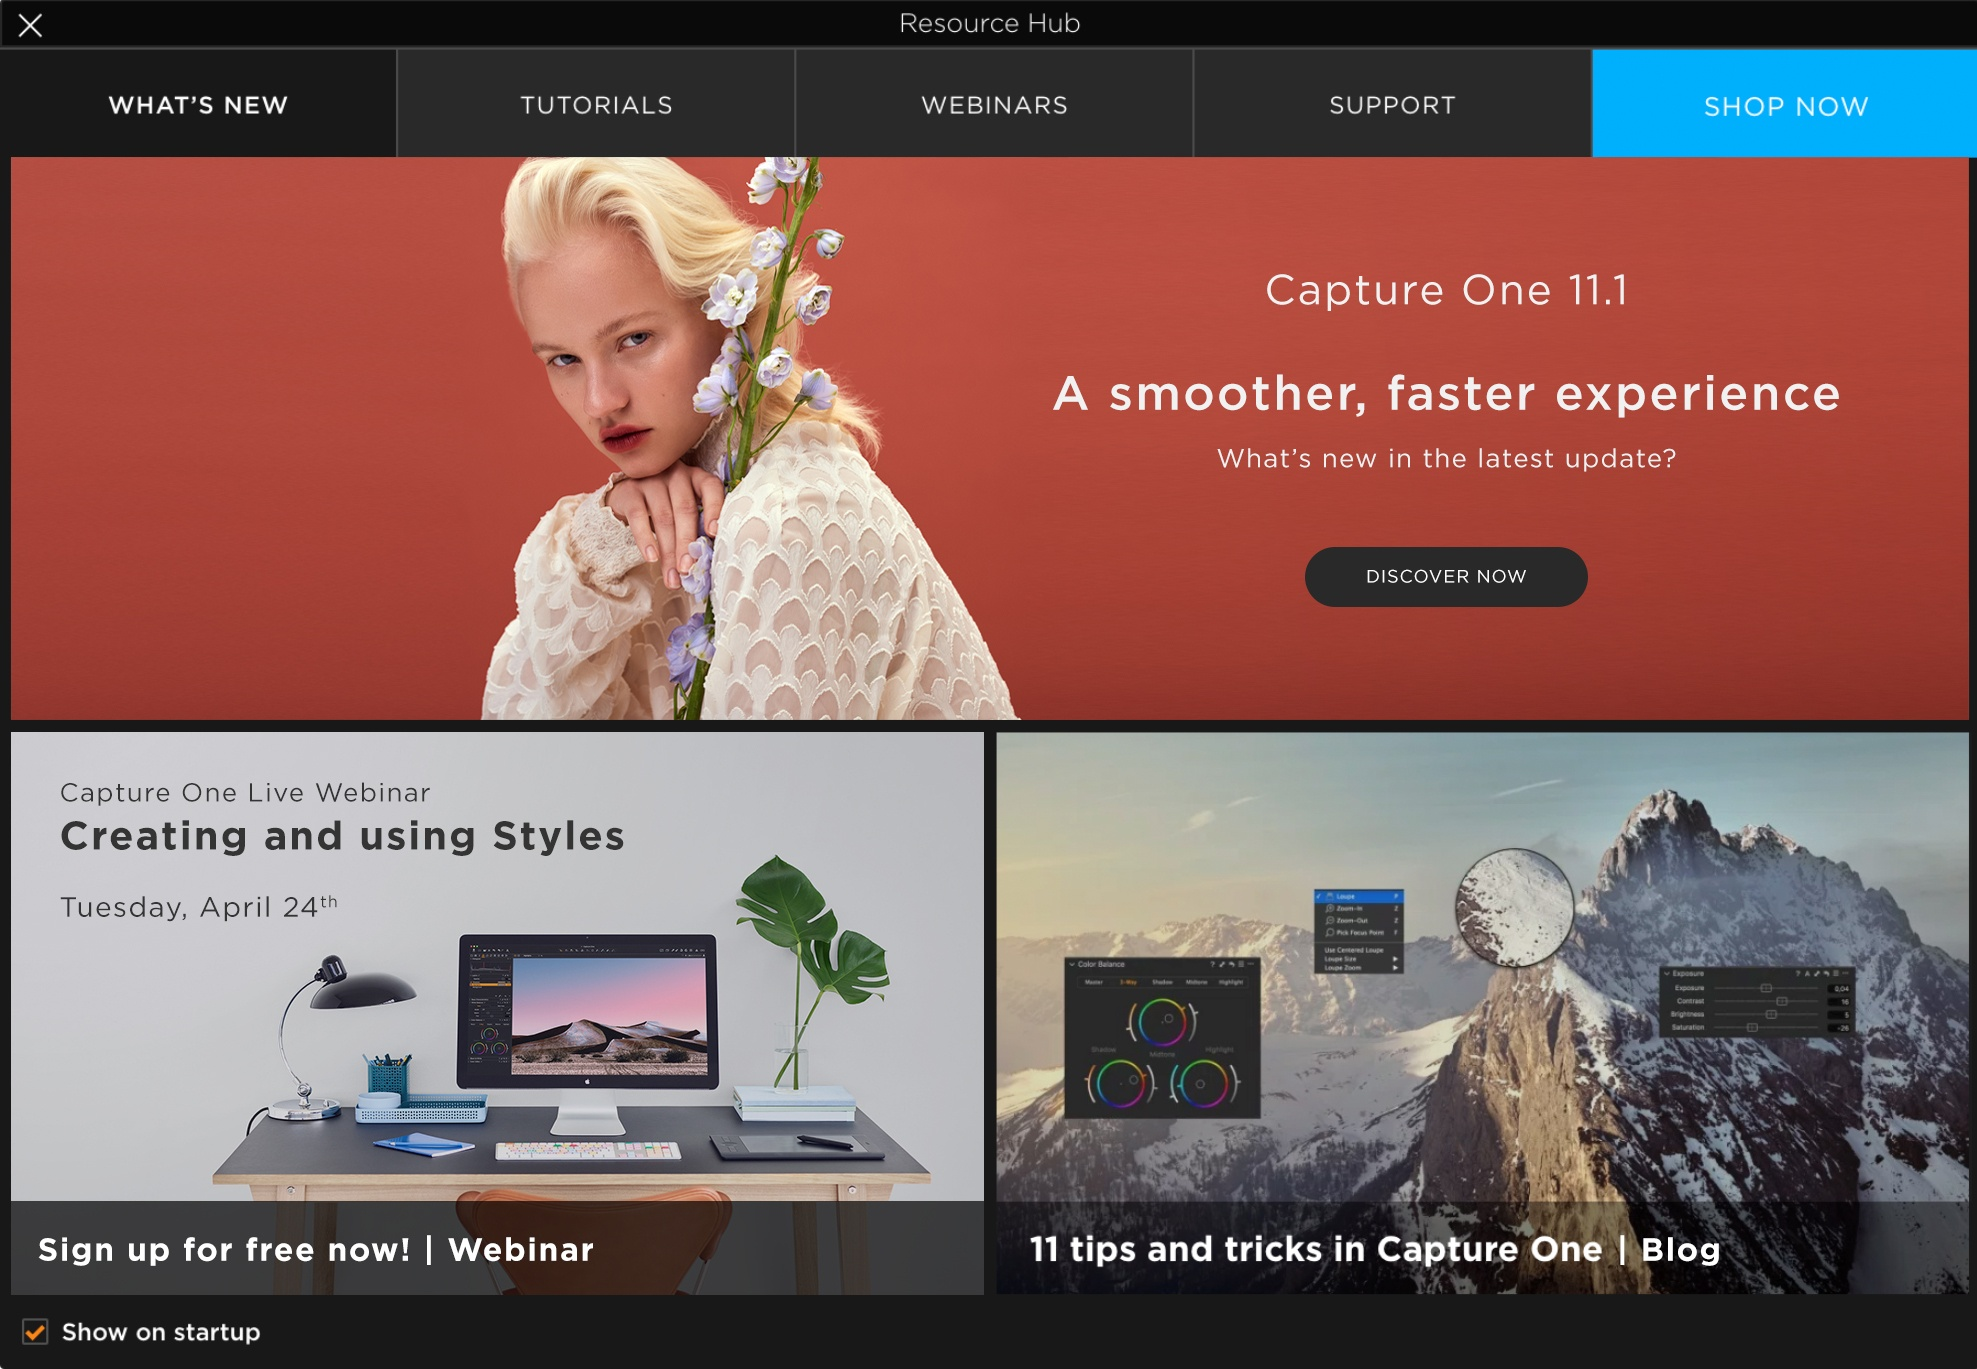 capture one pro 11.1 review, resource hub, what's new